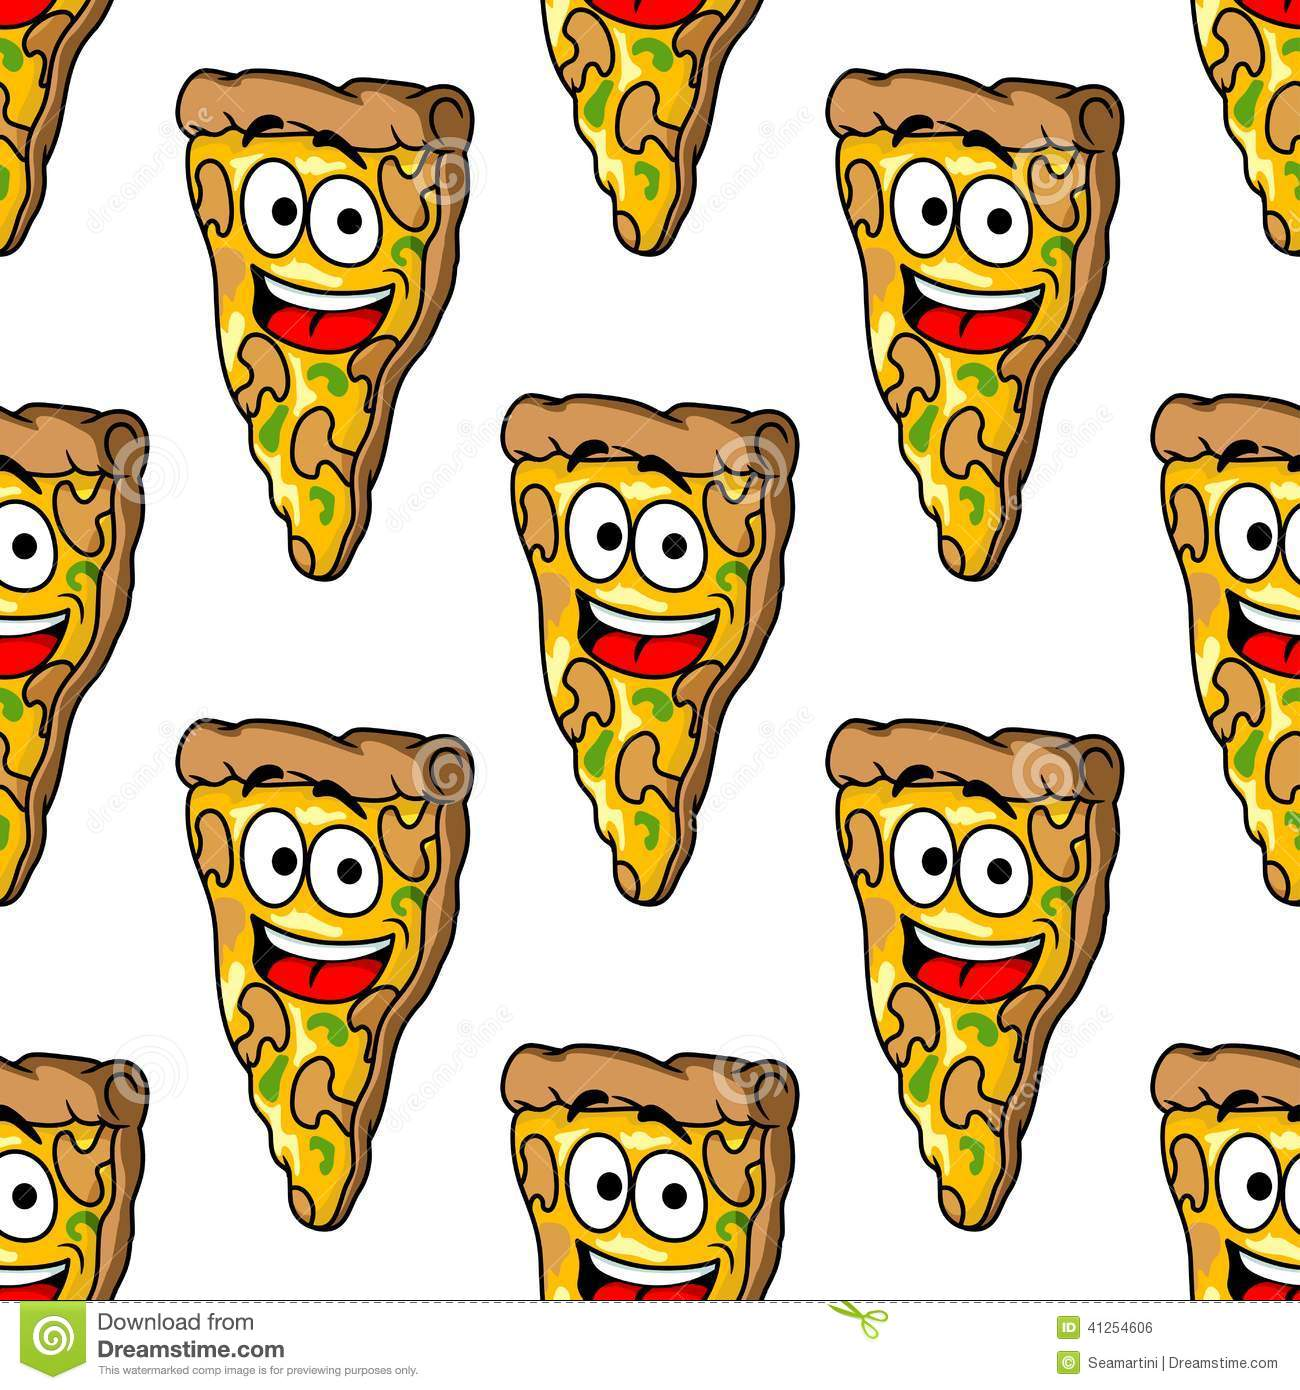 ... pizza slices with melted cheese and a happy smiling face in square